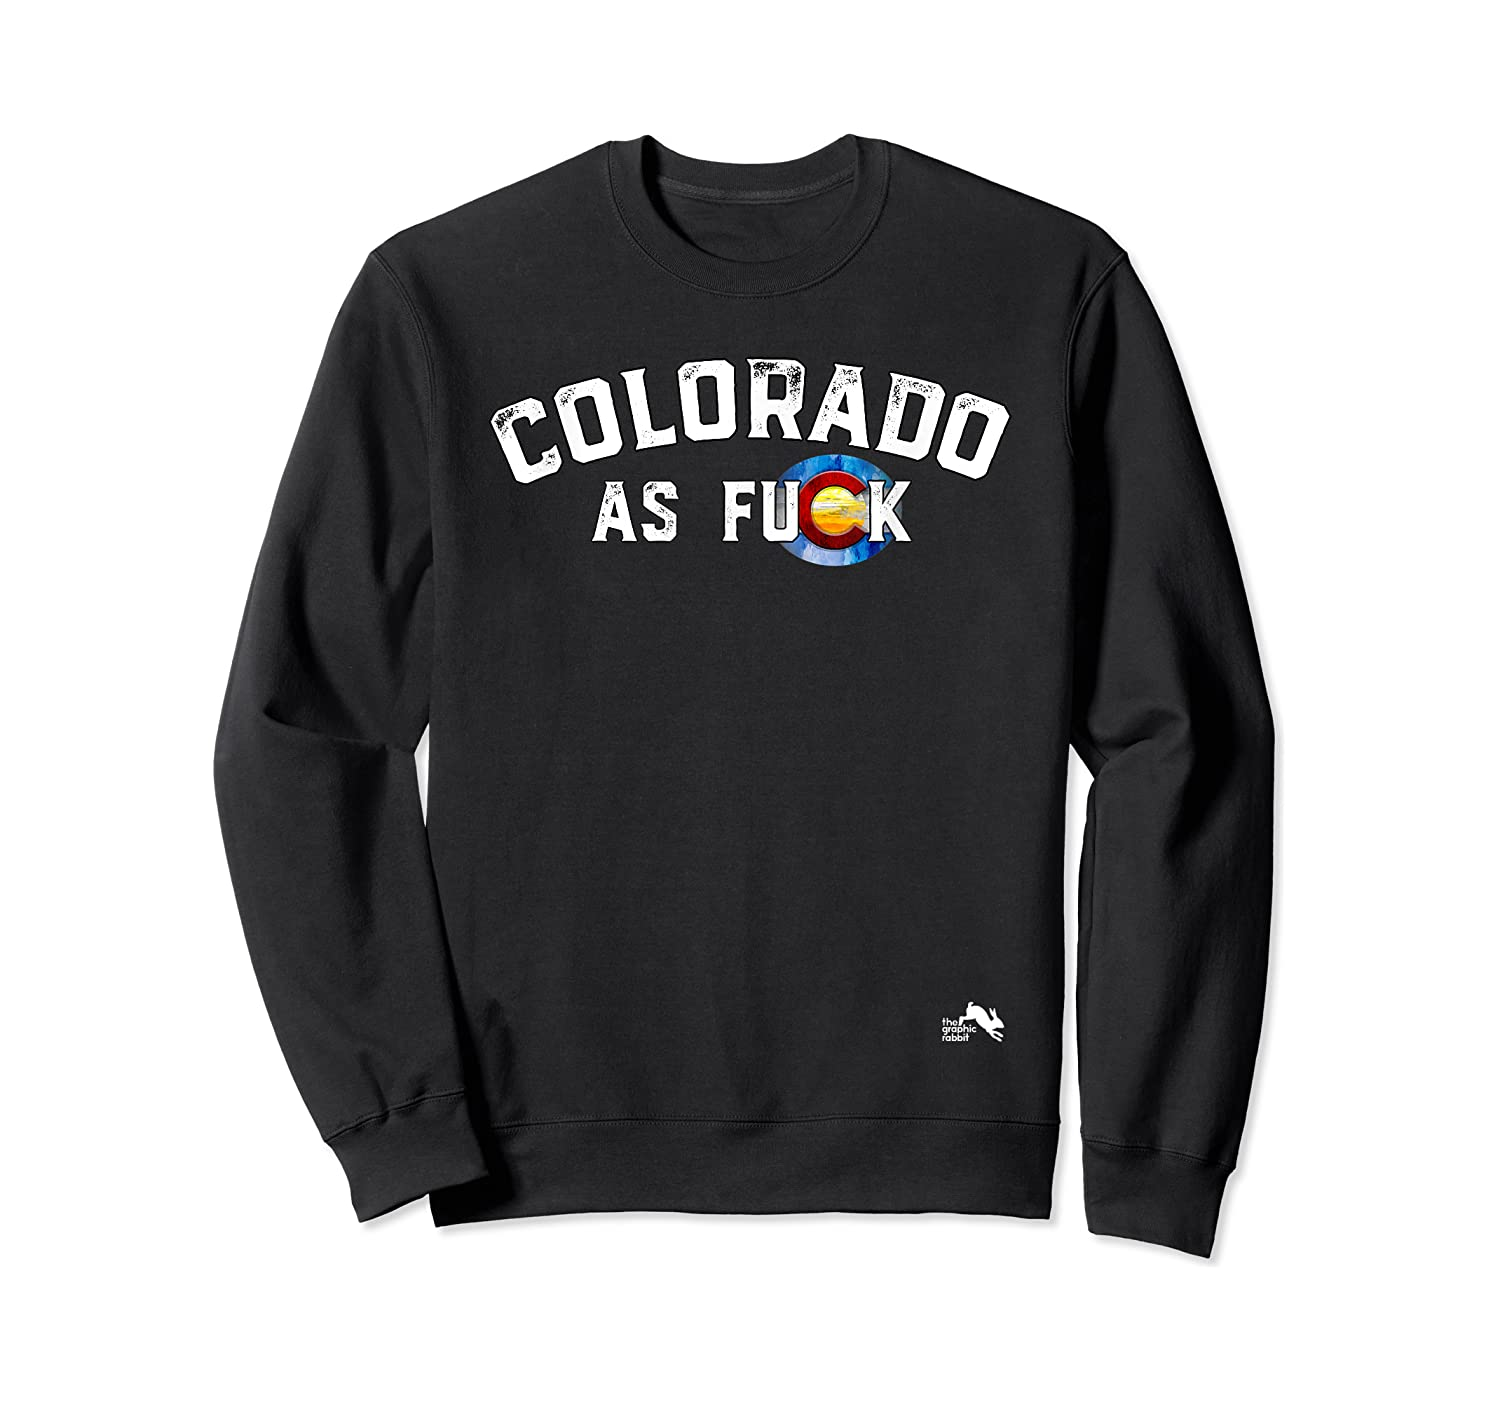 Colorado Shirt Rocky Mountains As Fuck Gift For Cussing Crewneck Sweater